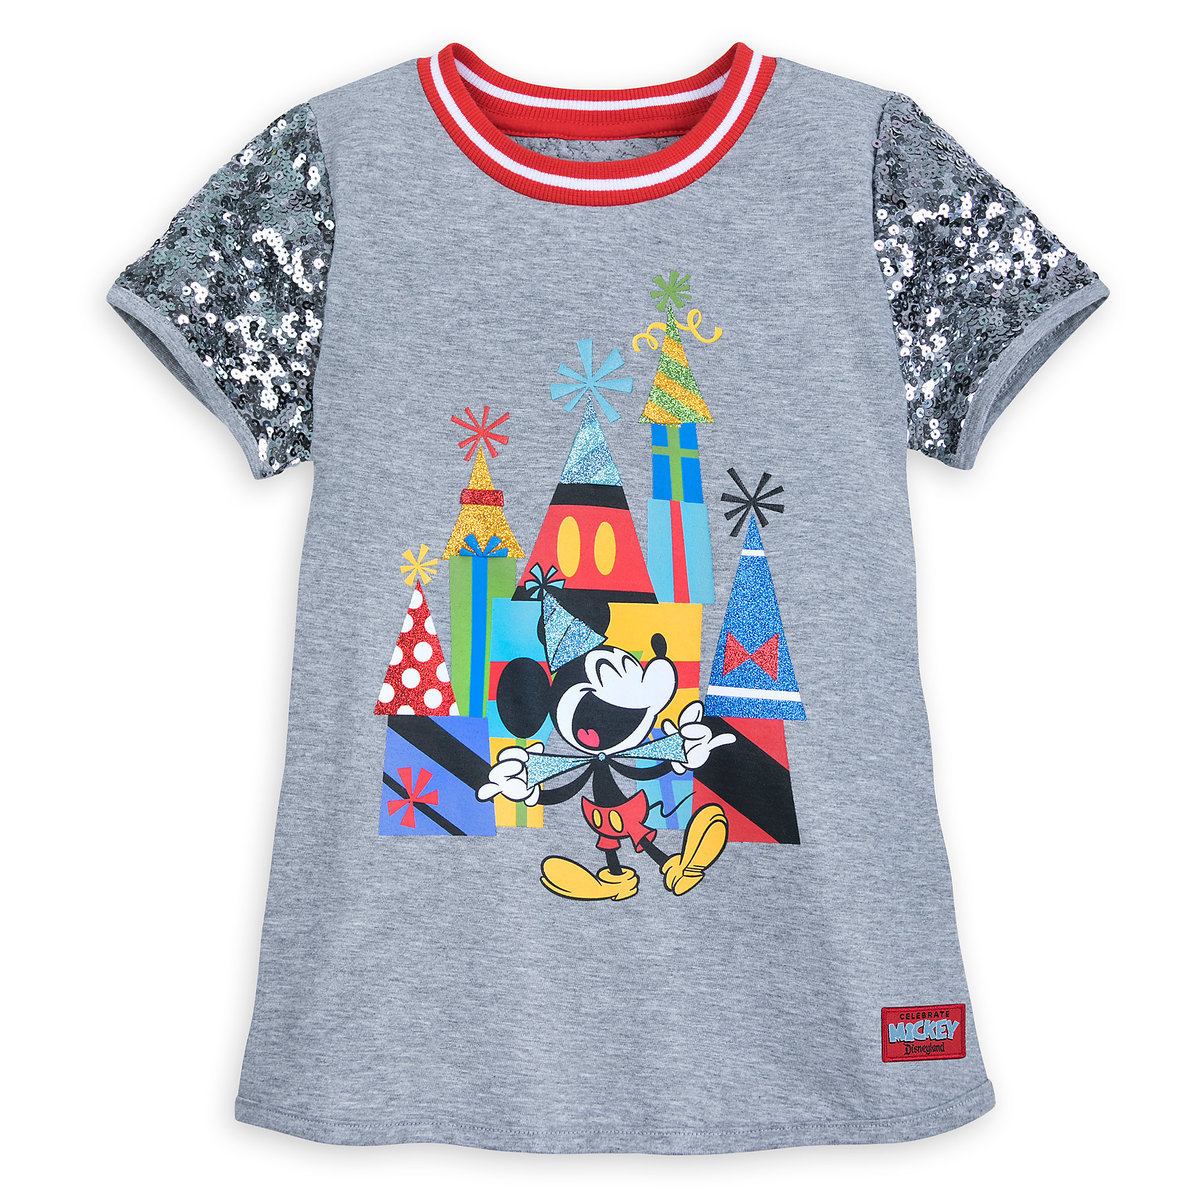 00a5eb2cfa1c Product Image of Mickey Mouse Celebration Sequin T-Shirt for Girls -  Disneyland # 1